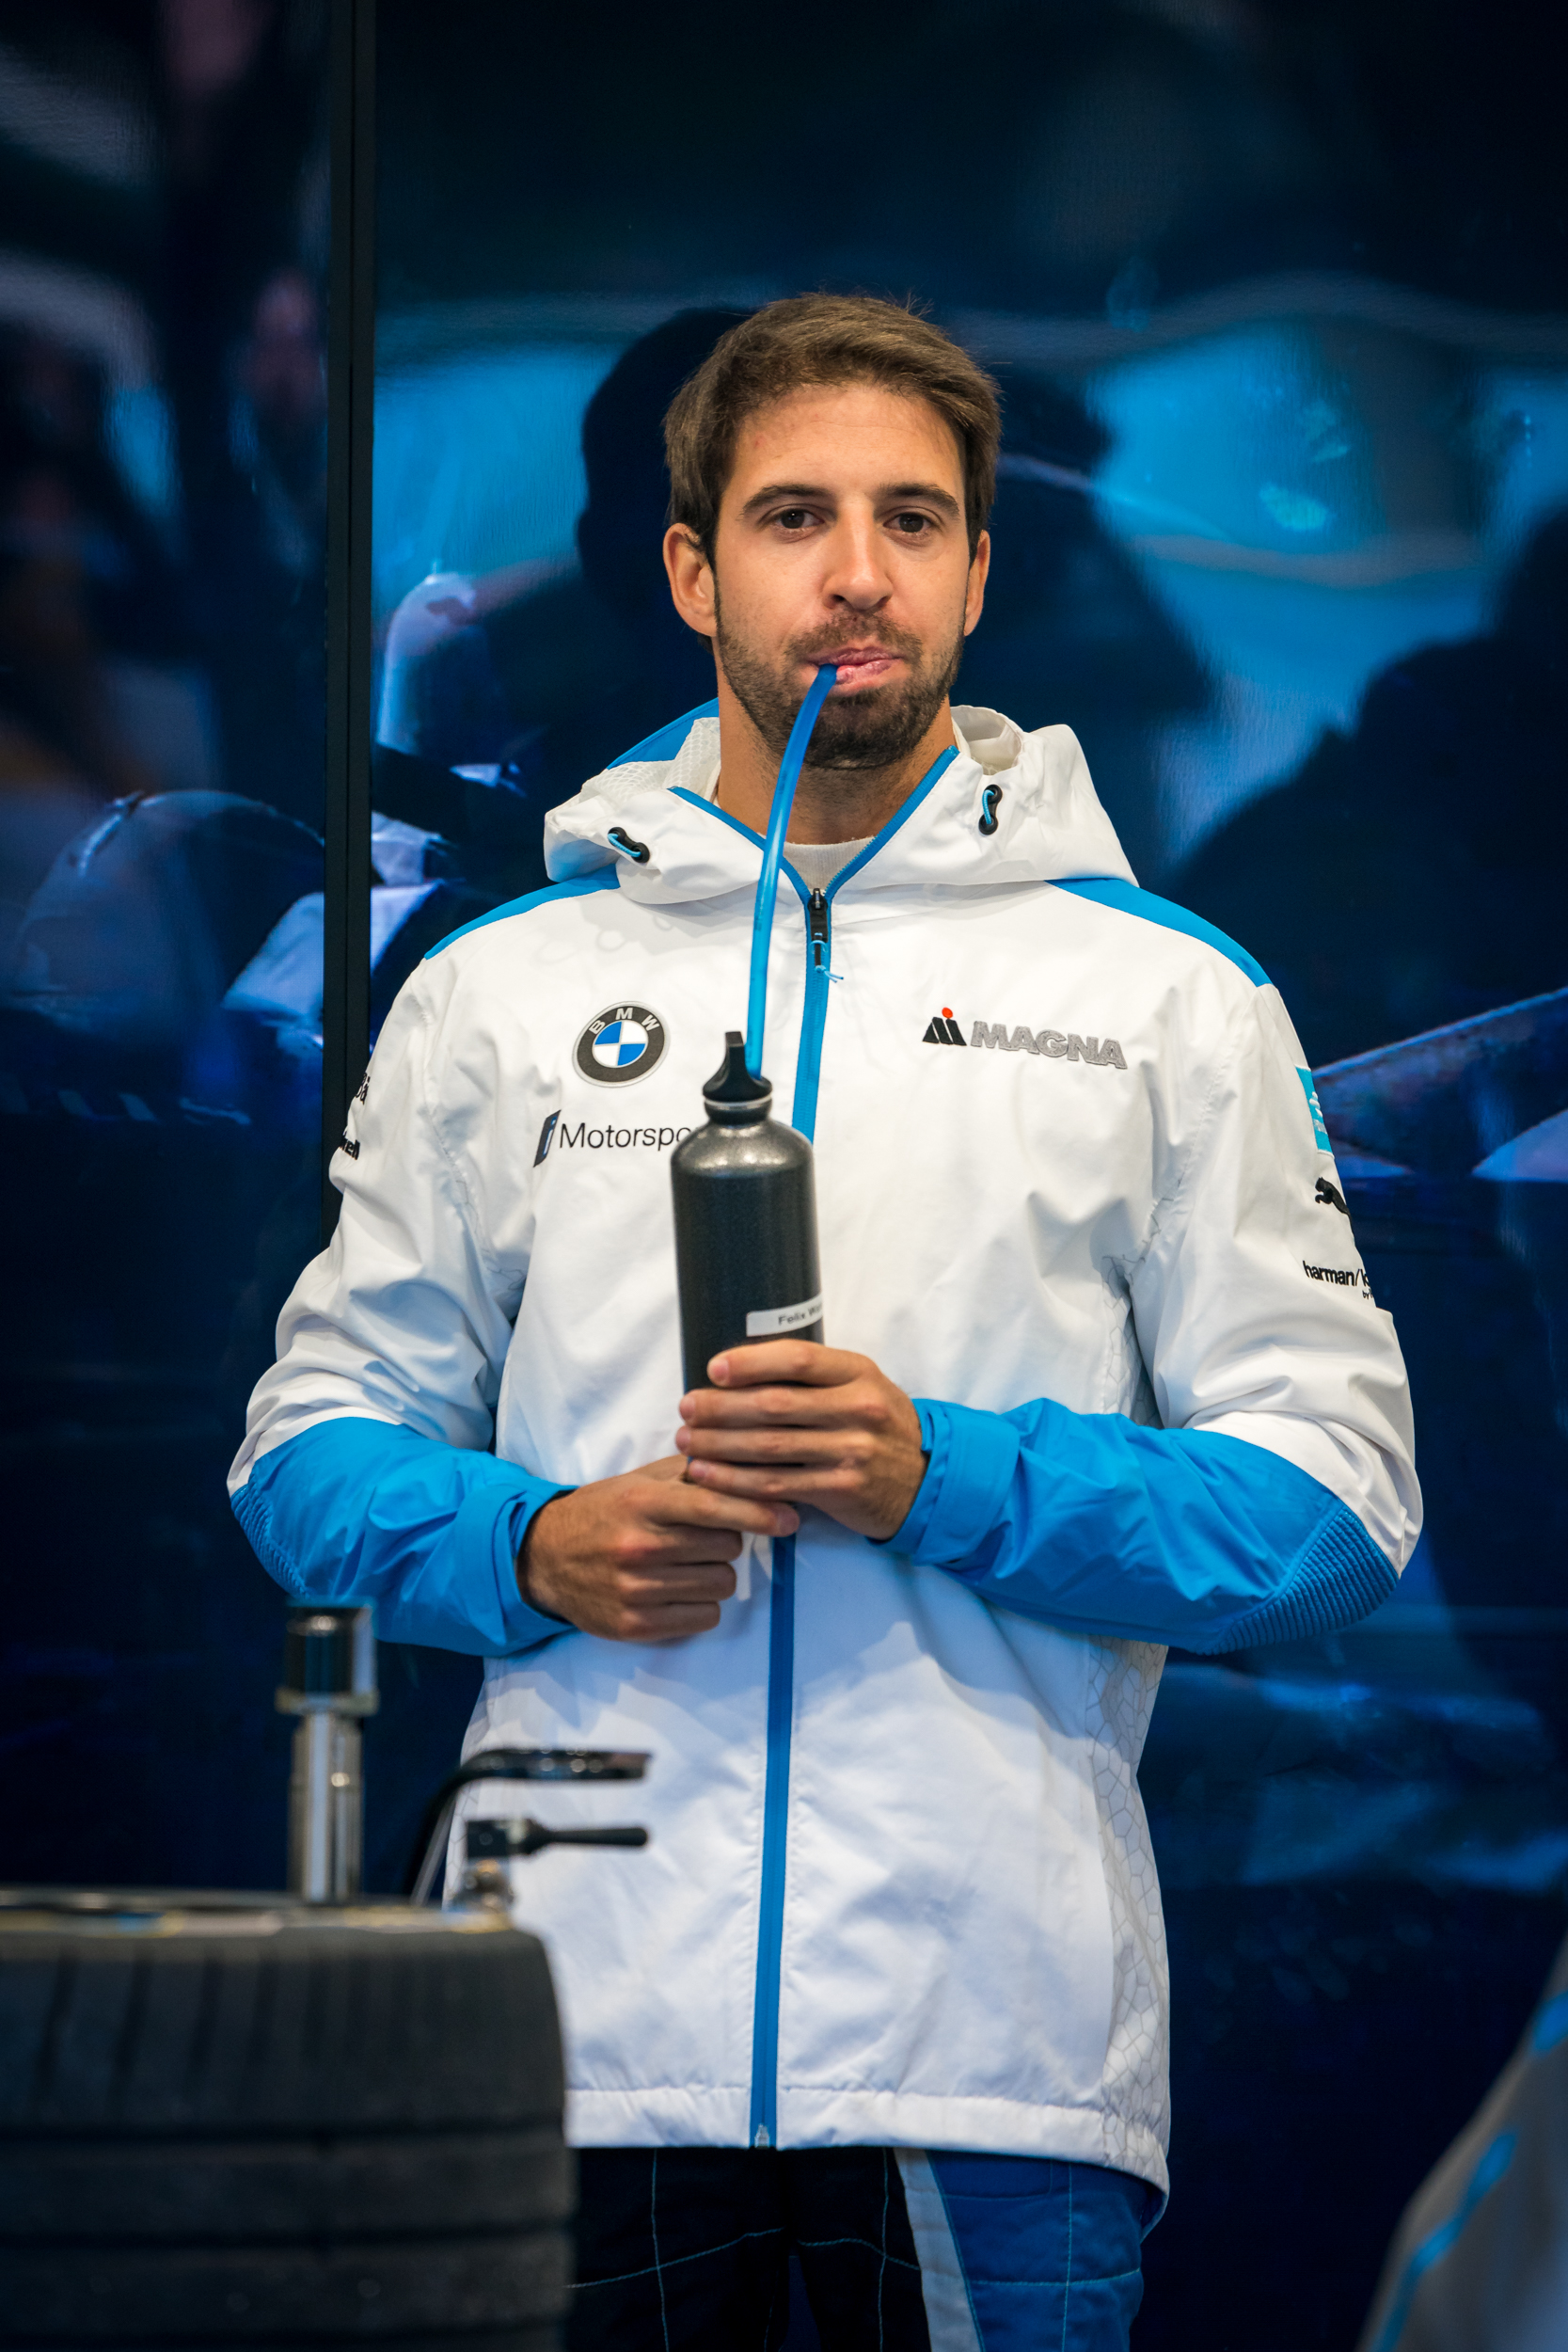 BMW i_Formula E Paris 2019_26&27-04-19_Florian Leger_SHARE & DARE_HD_N°-224.jpg